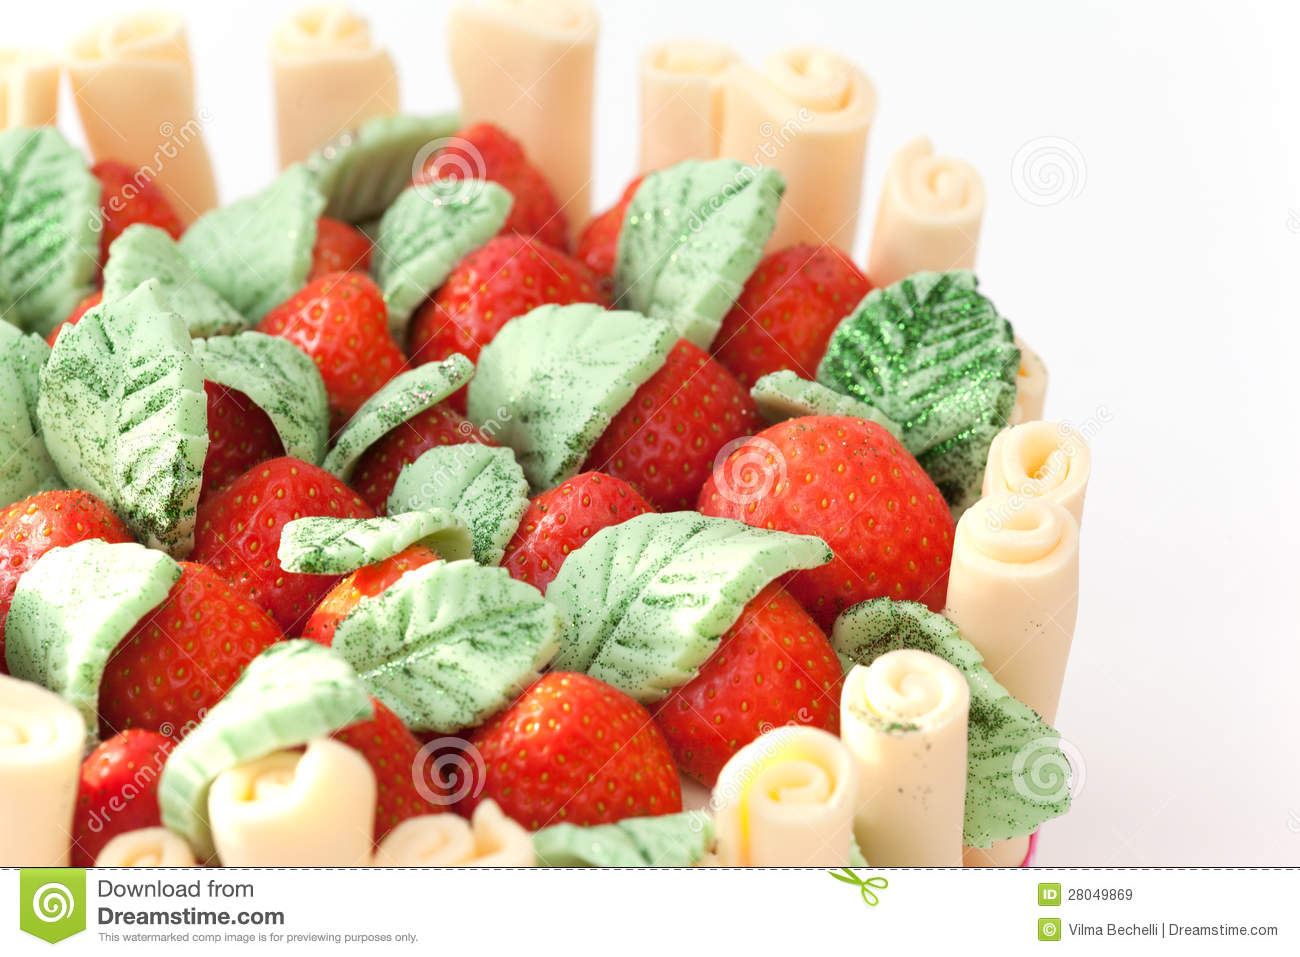 Strawberry Basket Cake Royalty Free Stock Images - Image: 28049869